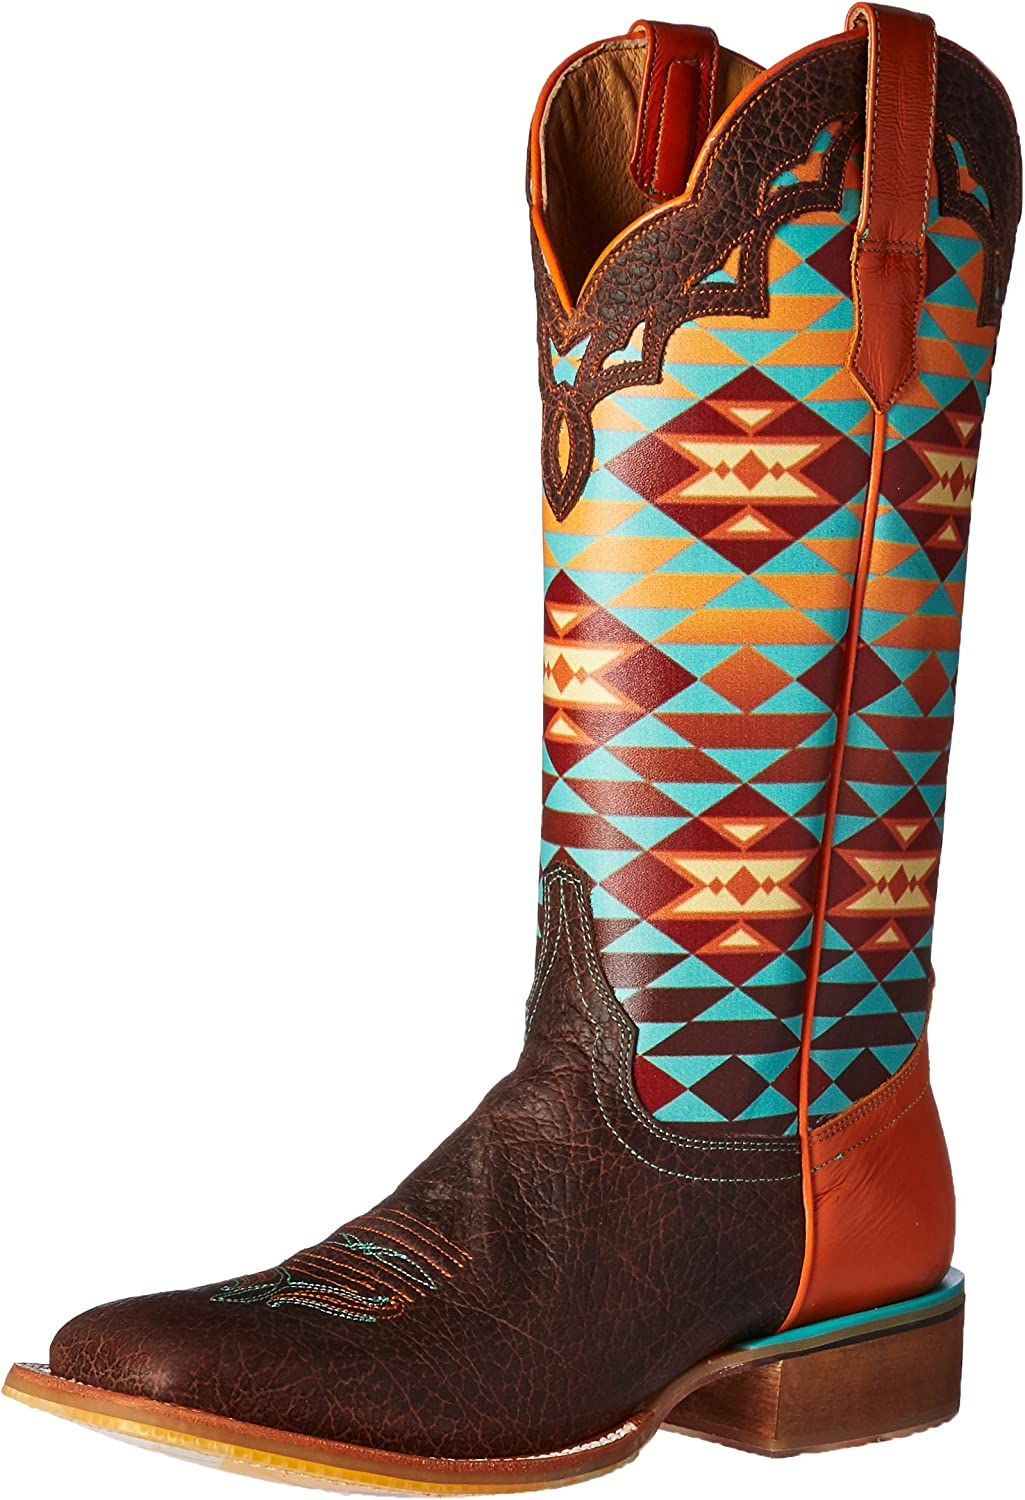 Cinch Women's Fritzy Riding Boot Brown